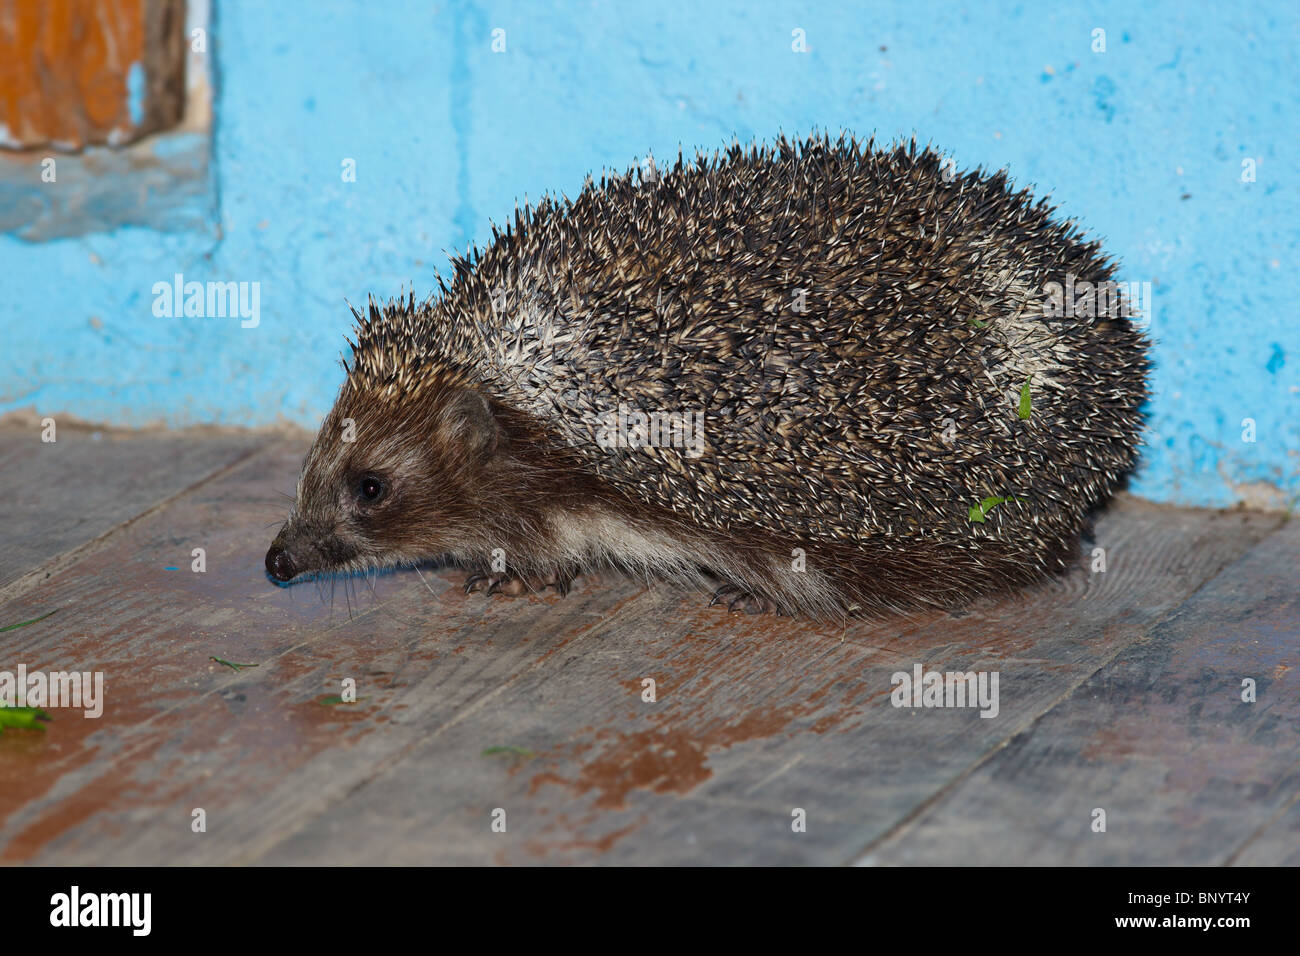 The adult hedgehog sits on threshold, side view. - Stock Image